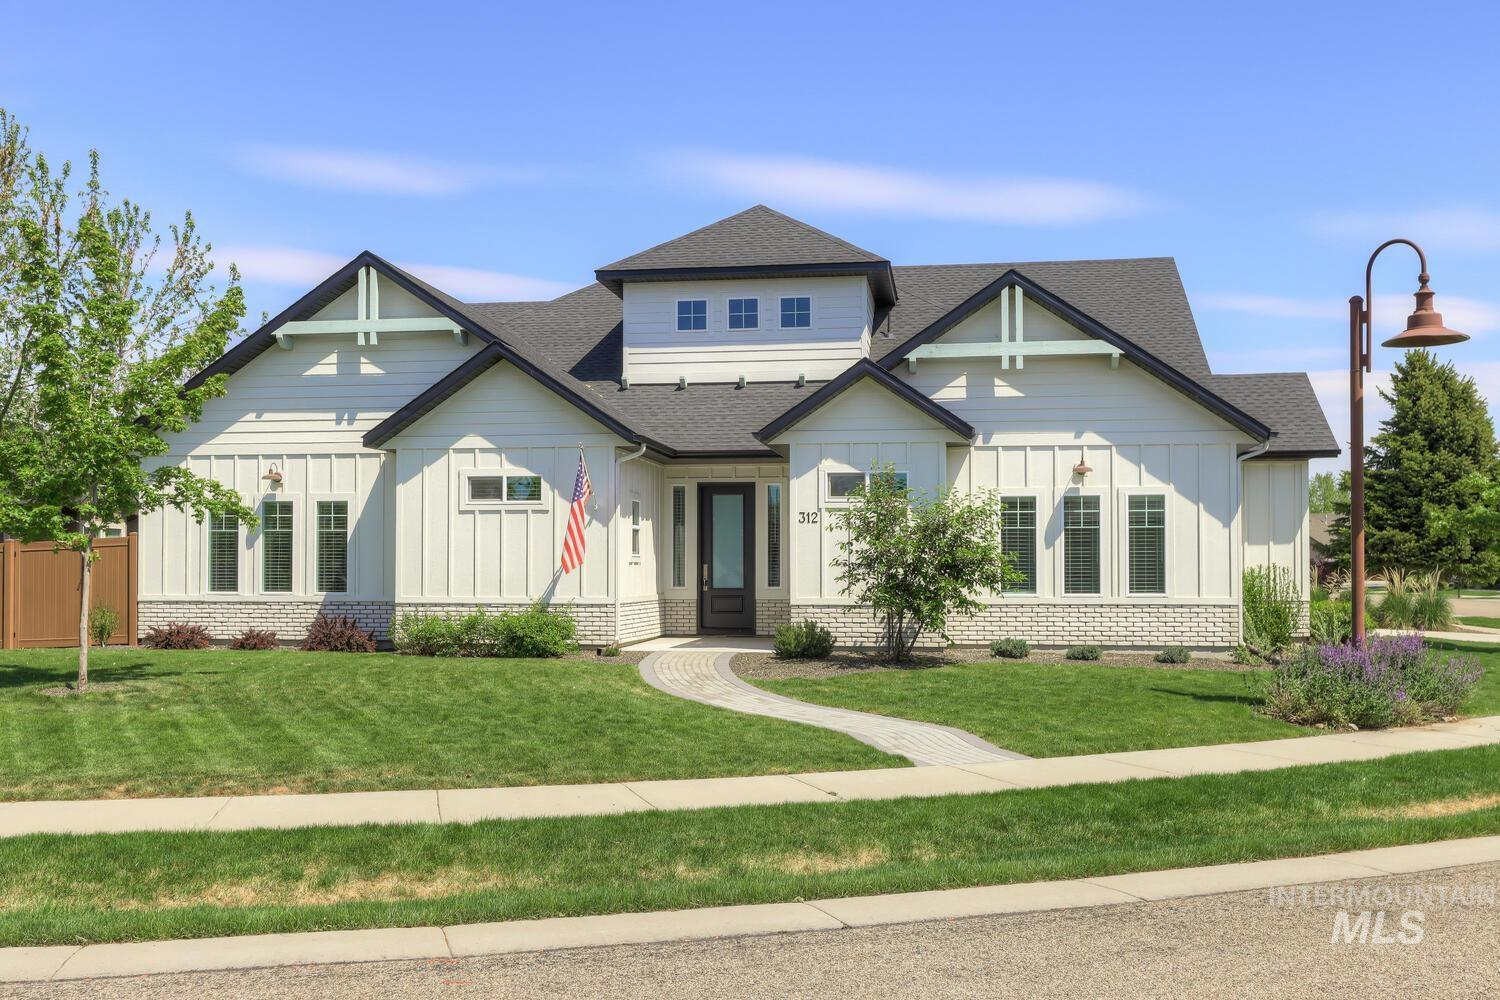 312 S Hullen Property Photo - Star, ID real estate listing